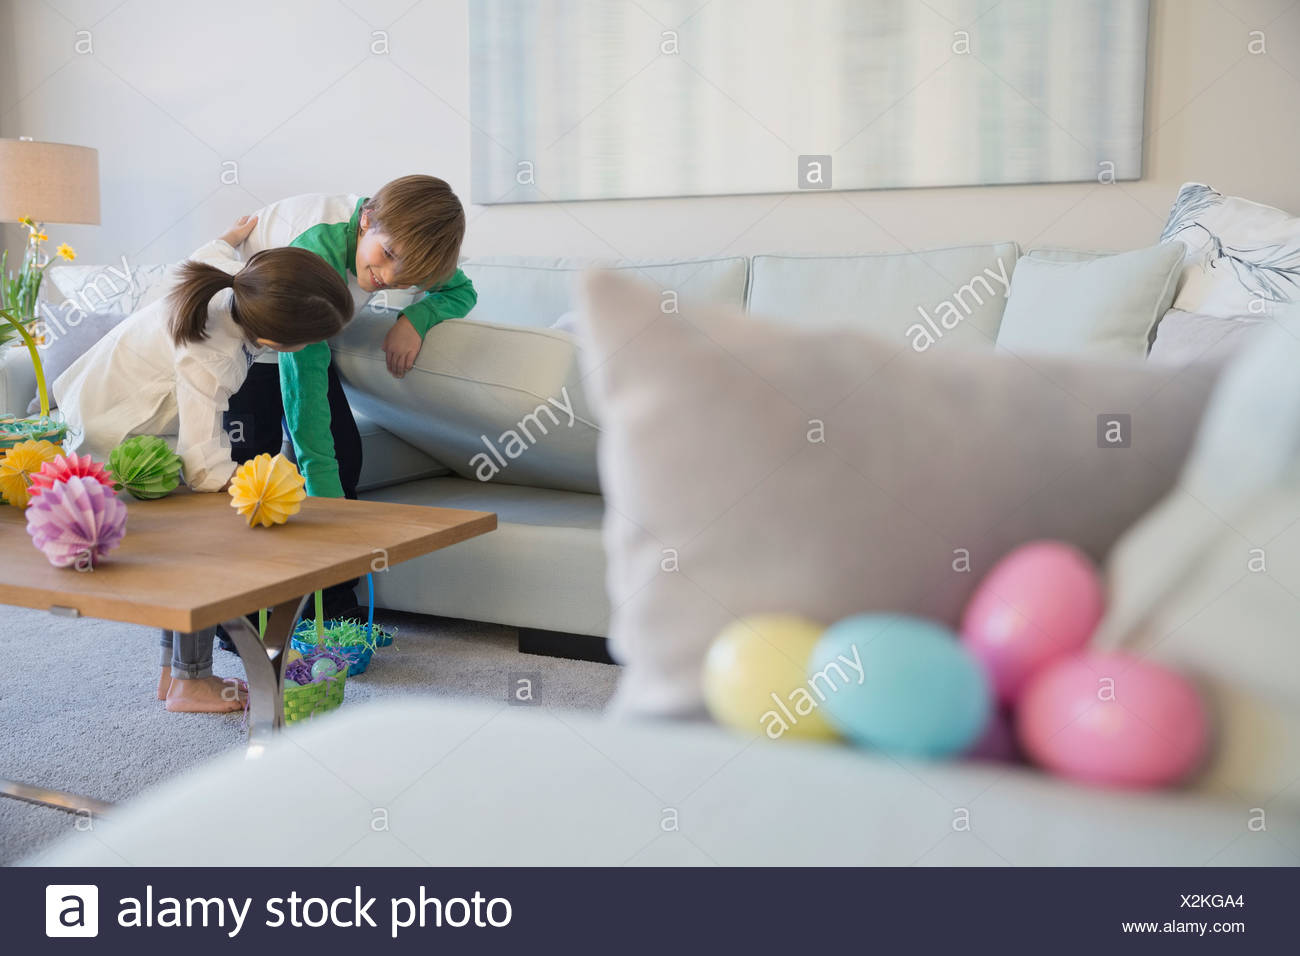 Siblings searching for Easter eggs in living room - Stock Image